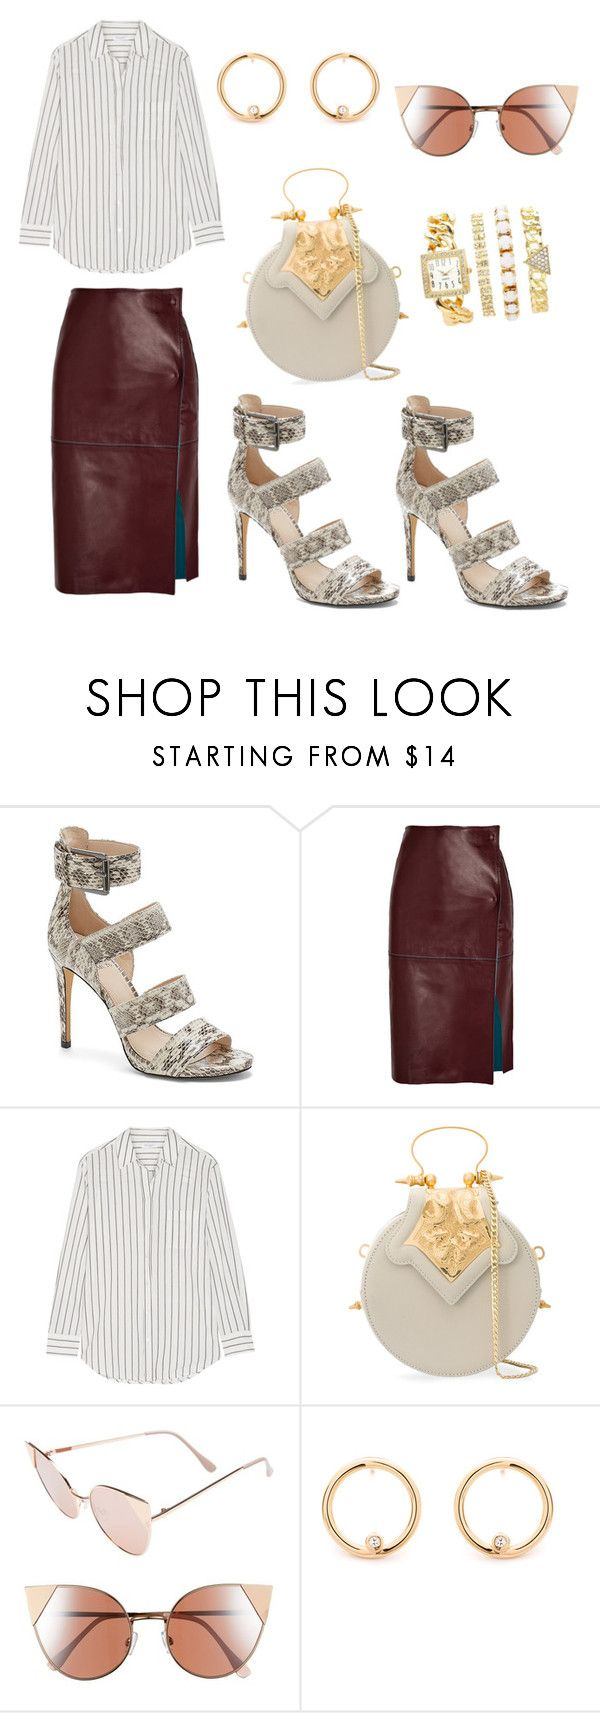 """""""Untitled #3156"""" by loveparis7 ❤ liked on Polyvore featuring Vince Camuto, By Malene Birger, Equipment, Okhtein, BP. and Charlotte Russe"""